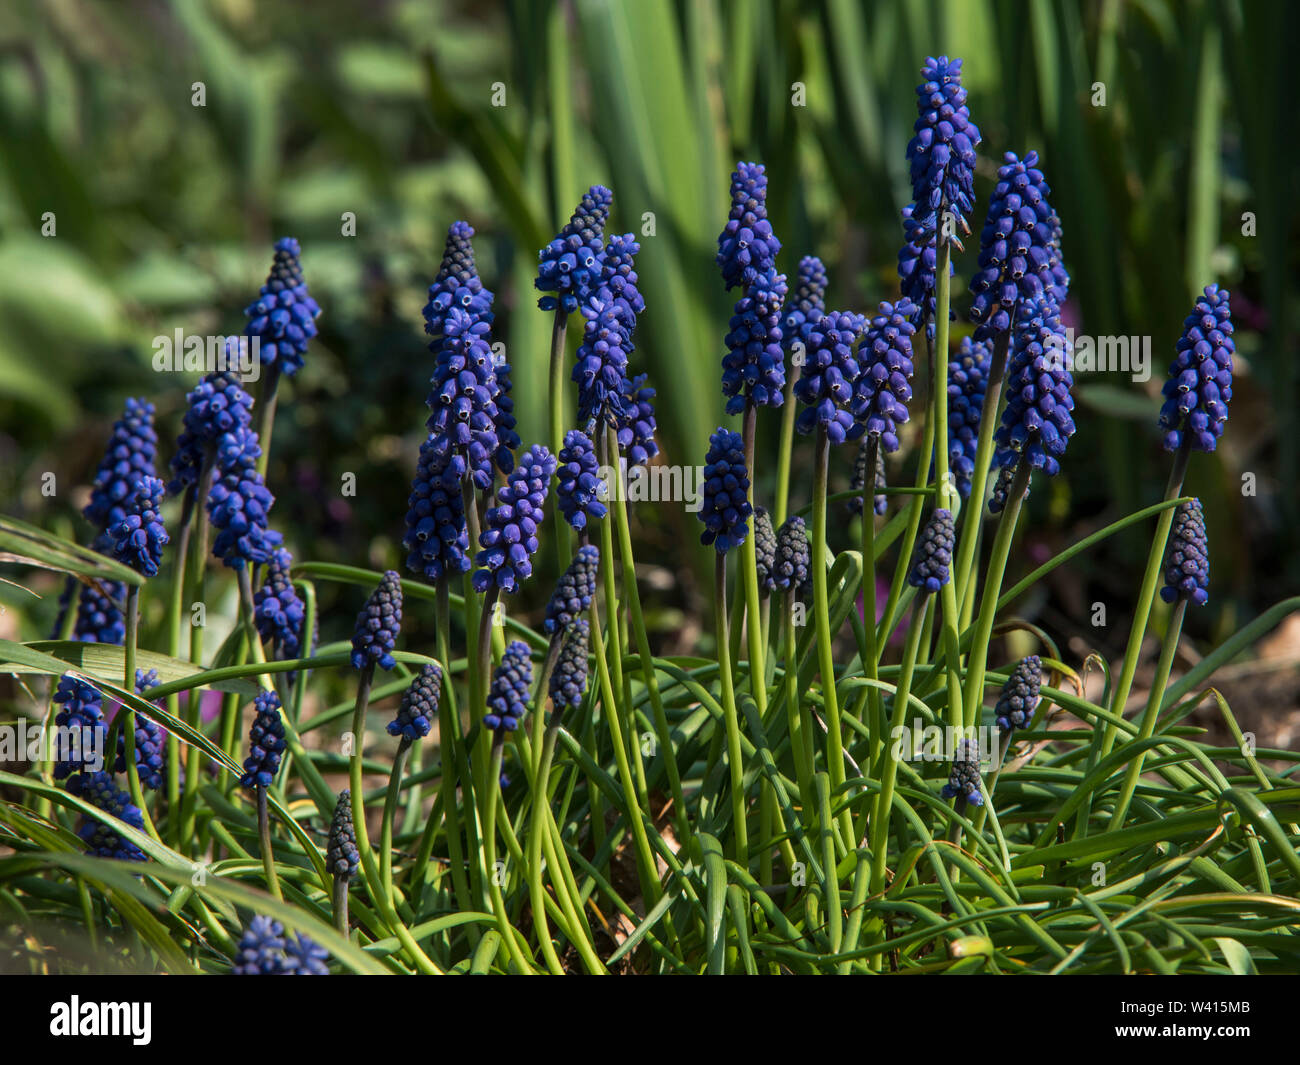 Grape Hyacinth (Muscari armeniacum) is a perennial bulb that blossoms into urn-shaped flowers in the Spring. Stock Photo